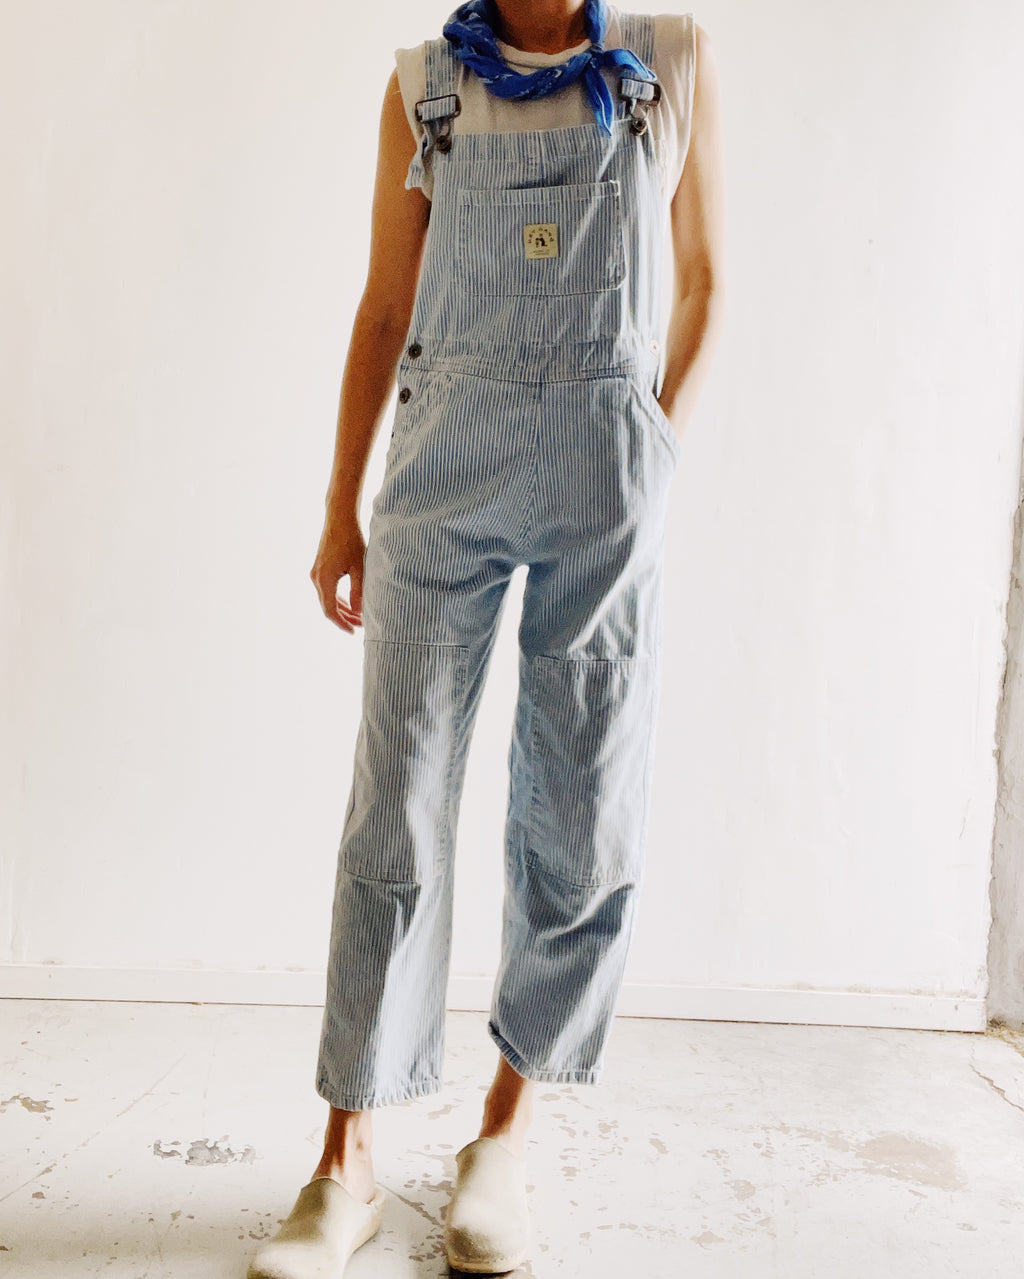 The Women's Knee Patch Overalls Washed Railroad